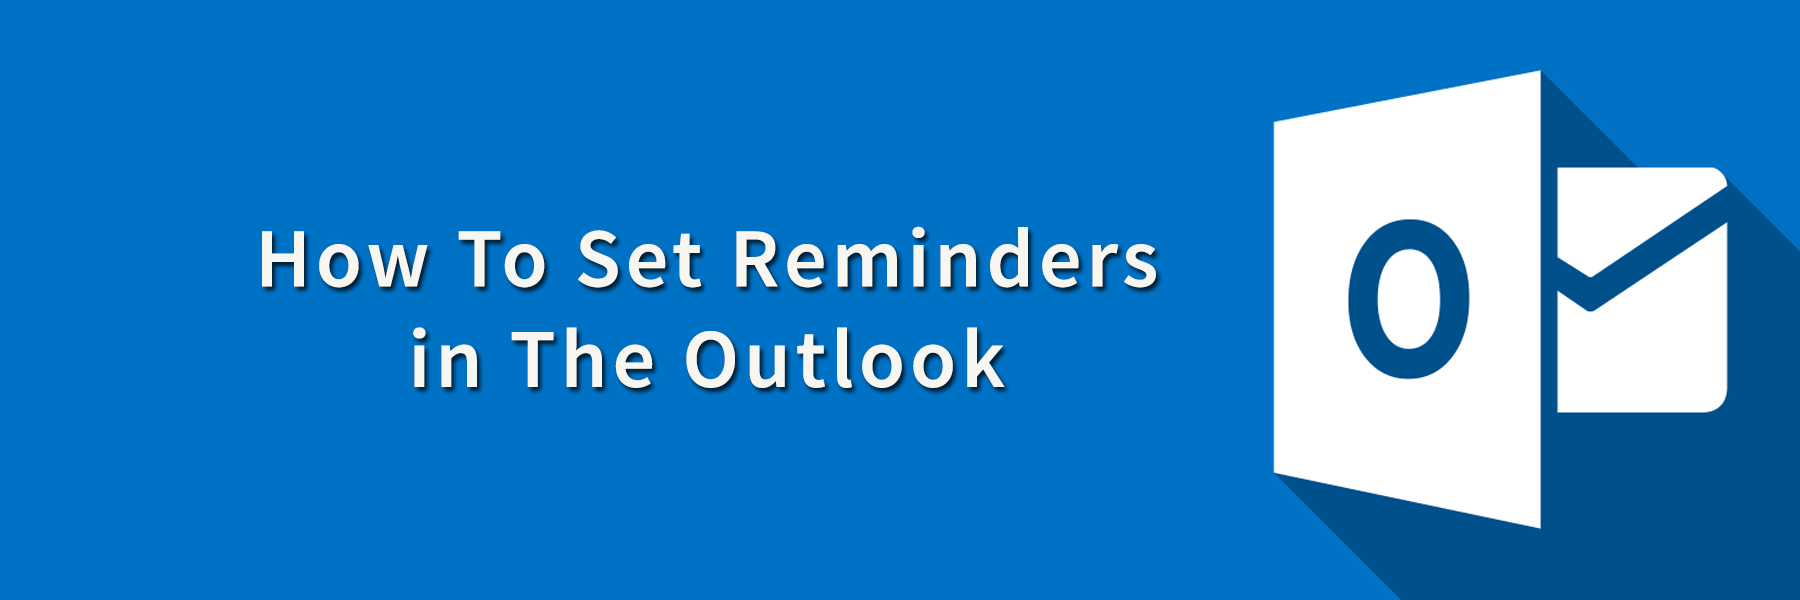 How To Set Reminders in The Outlook